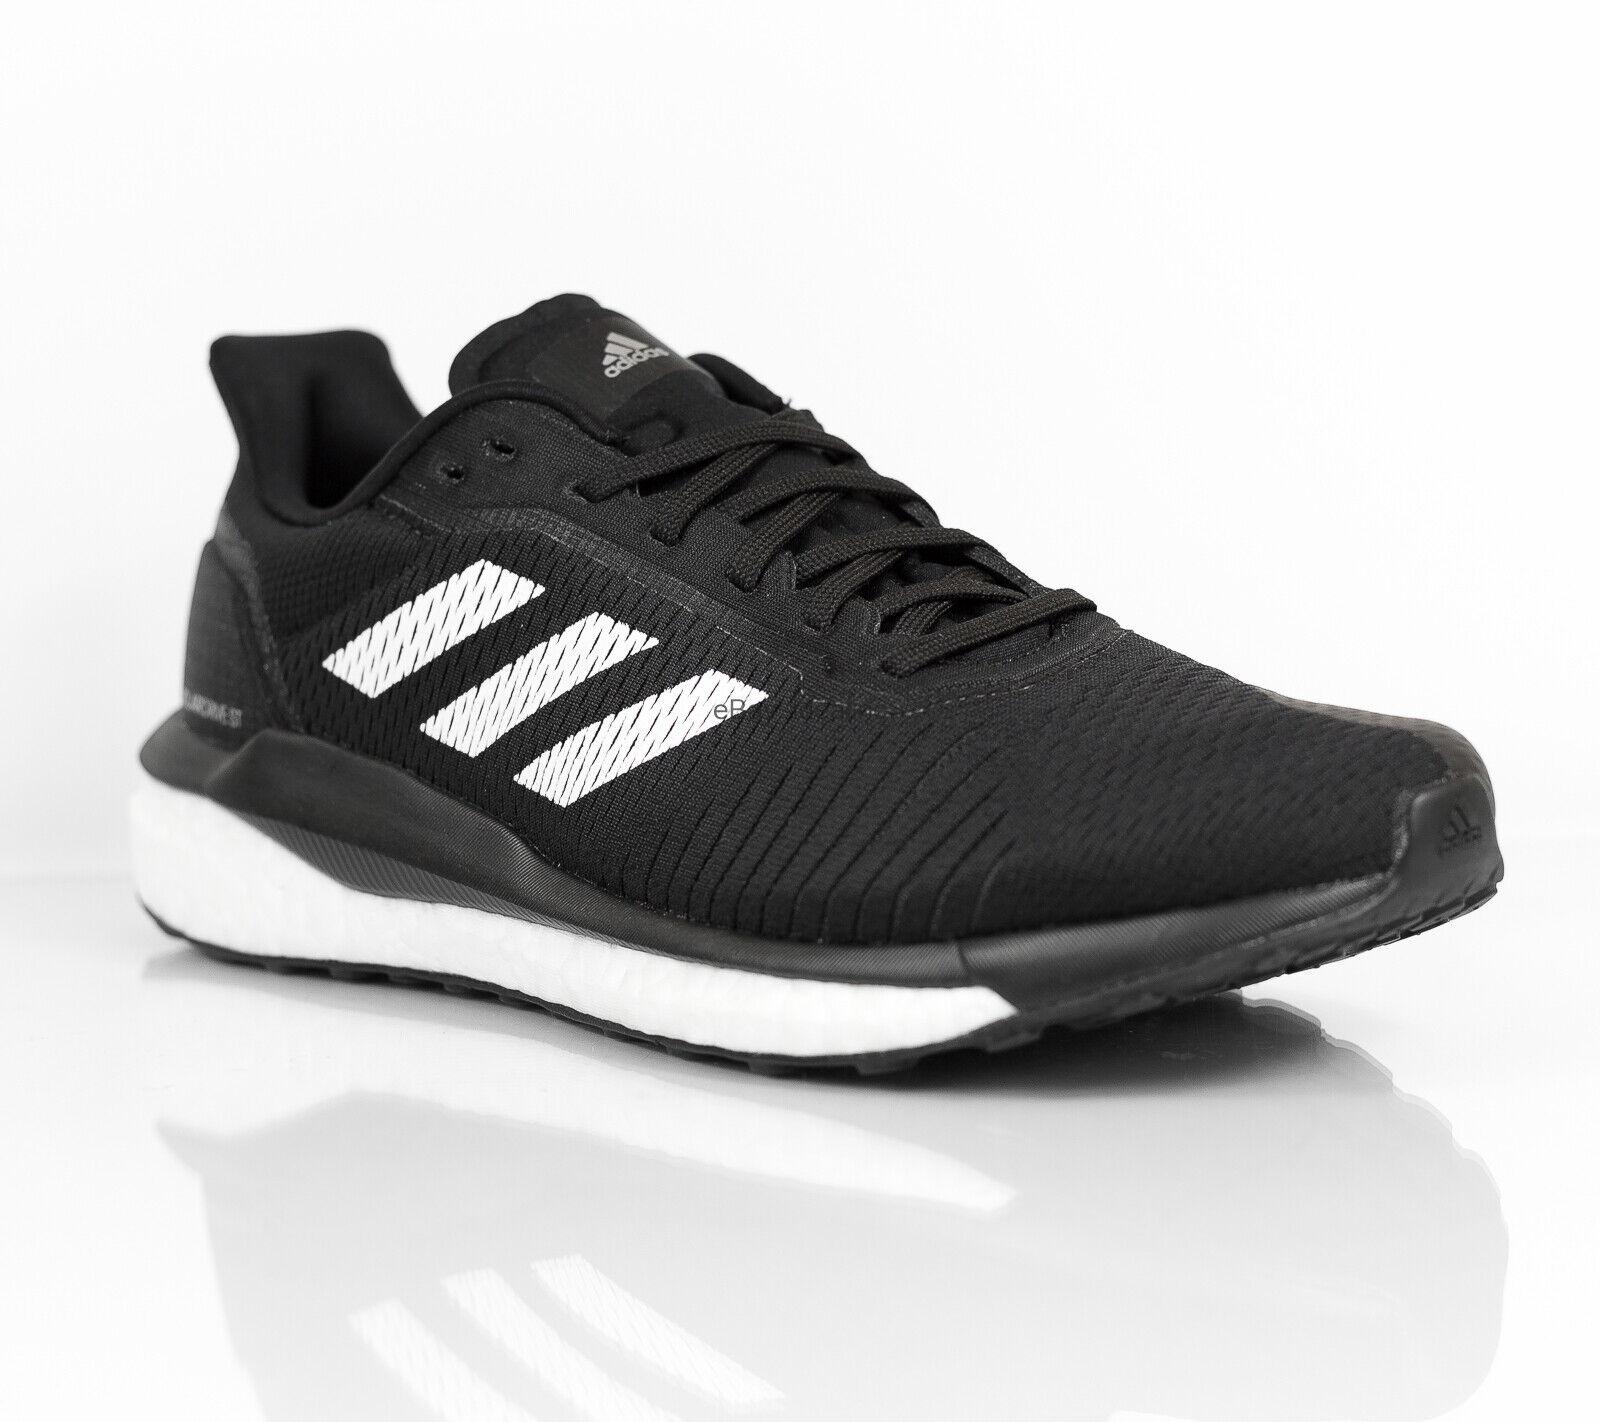 Adidas Solar Drive ST M Black Athletic Running Shoe D97443 M